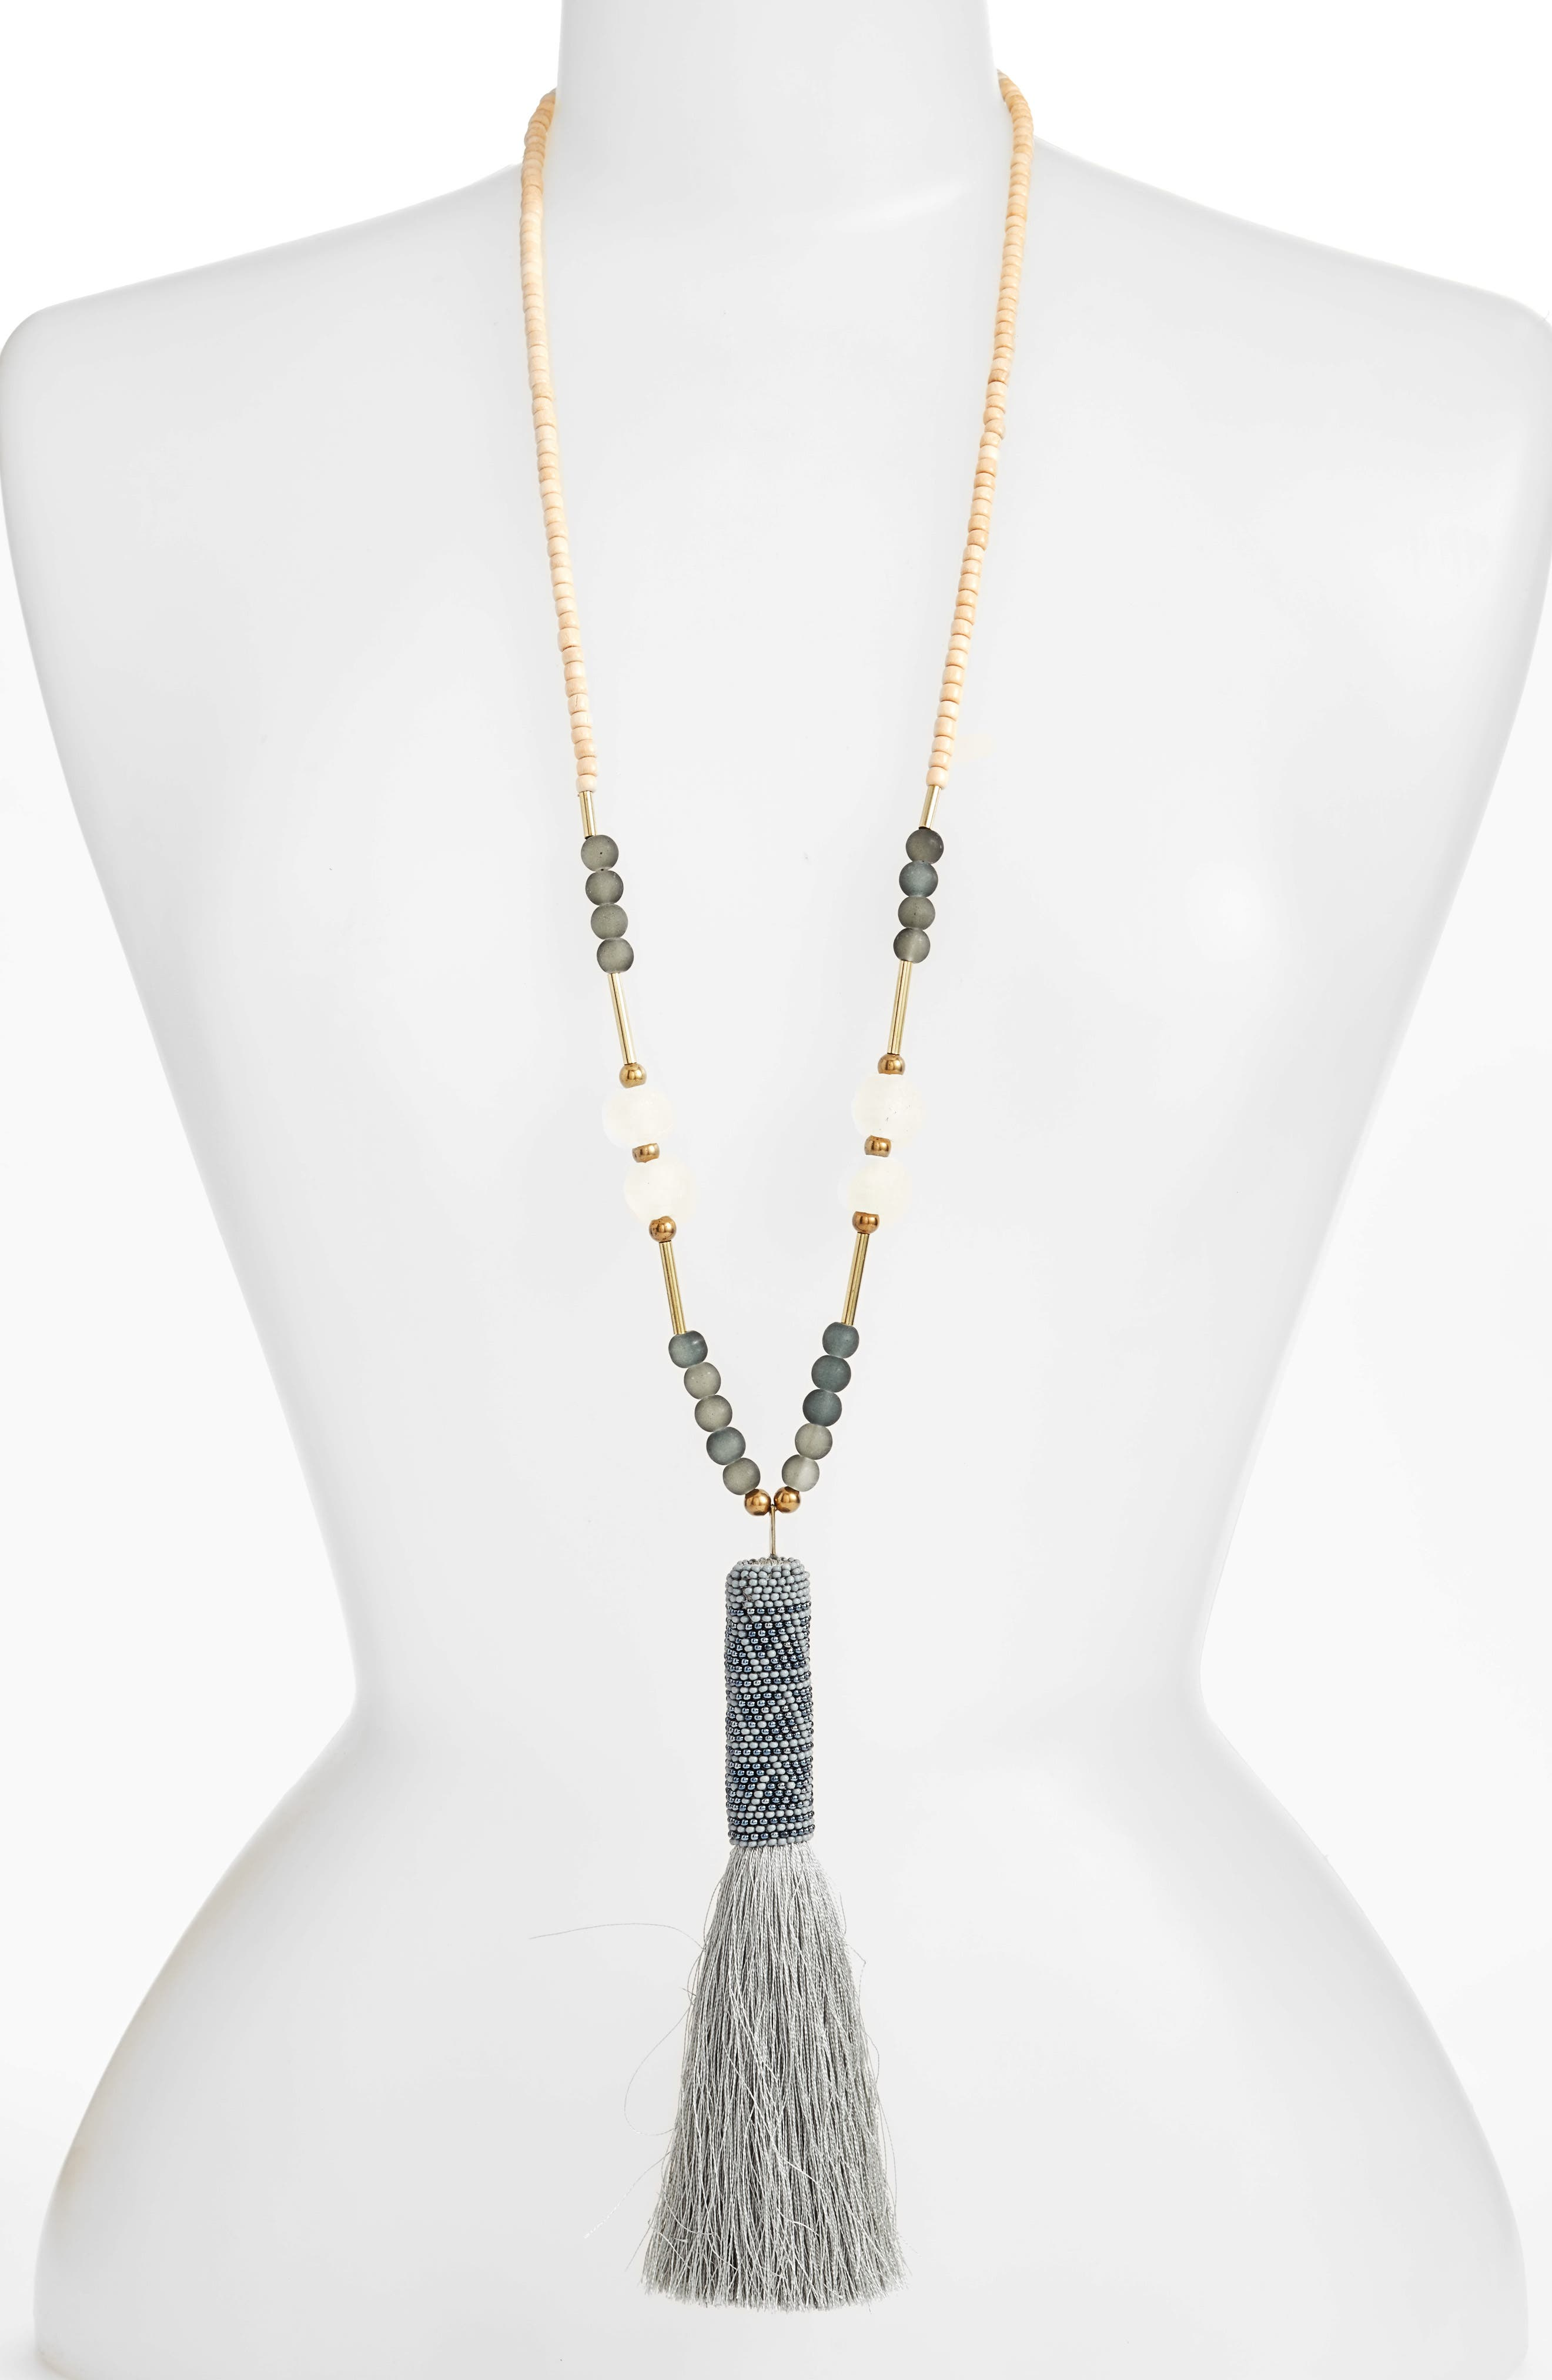 Main Image - Ink + Alloy Long Pendant Necklace